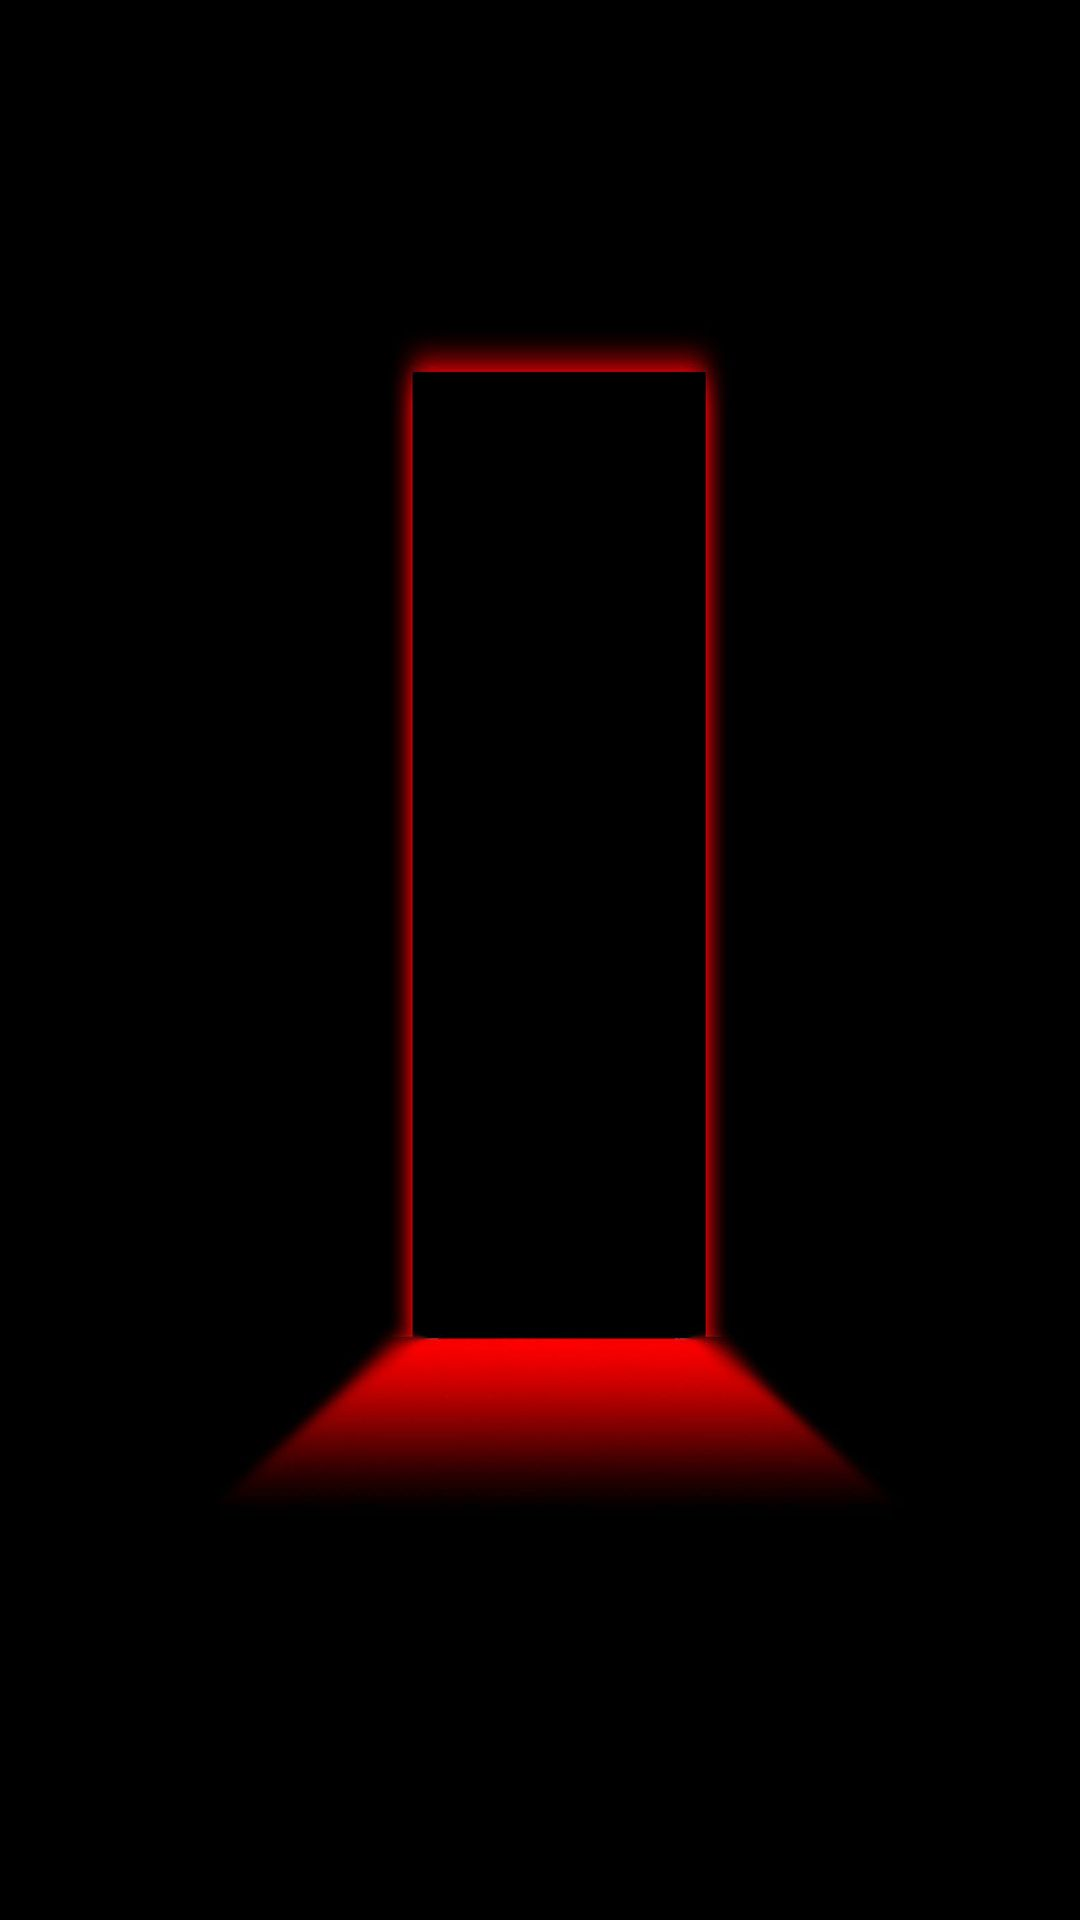 1080x1920 3d black and red line iphone 5s hd wallpapers free download ...